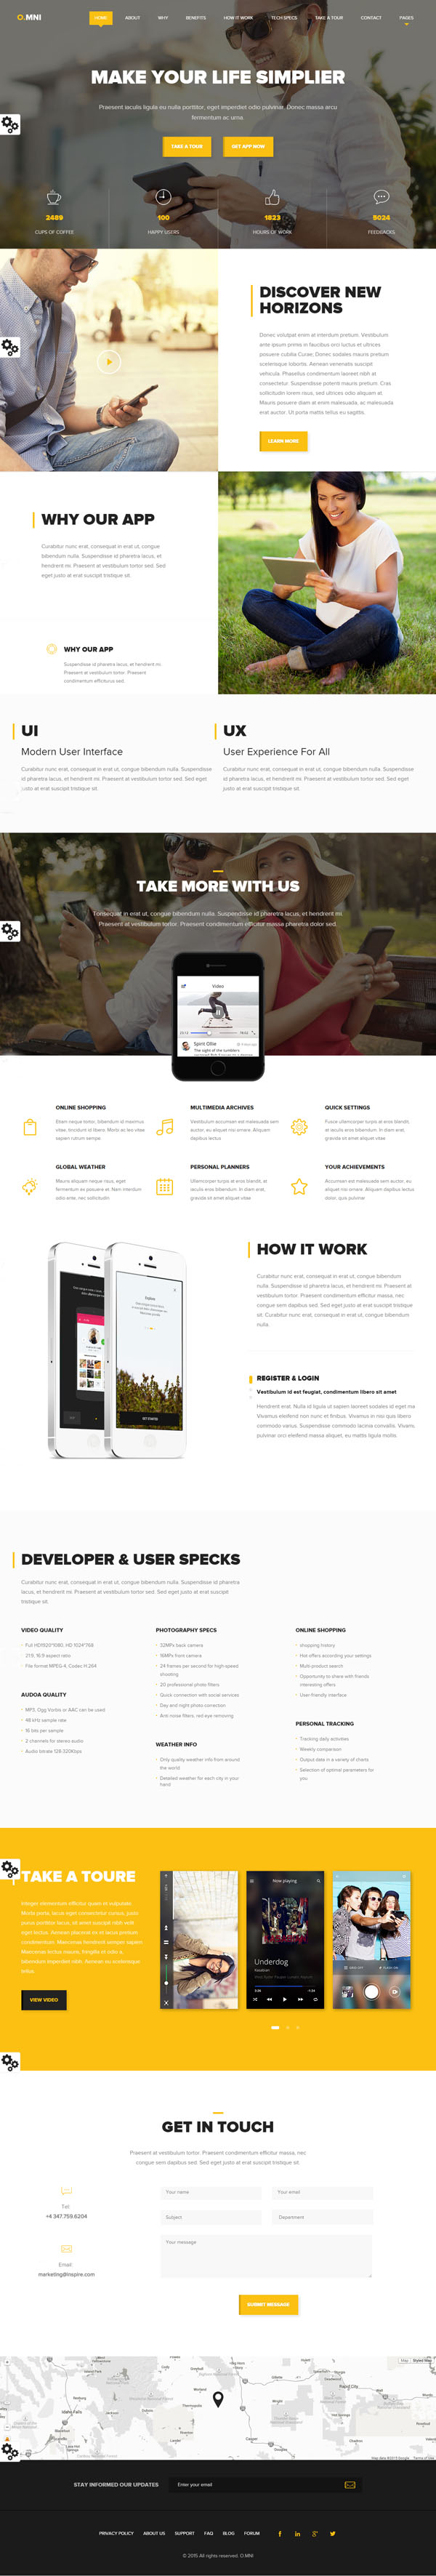 12 Amazing Creative Responsive HTML5 & CSS3 Templates | HTML5 & CSS3 ...